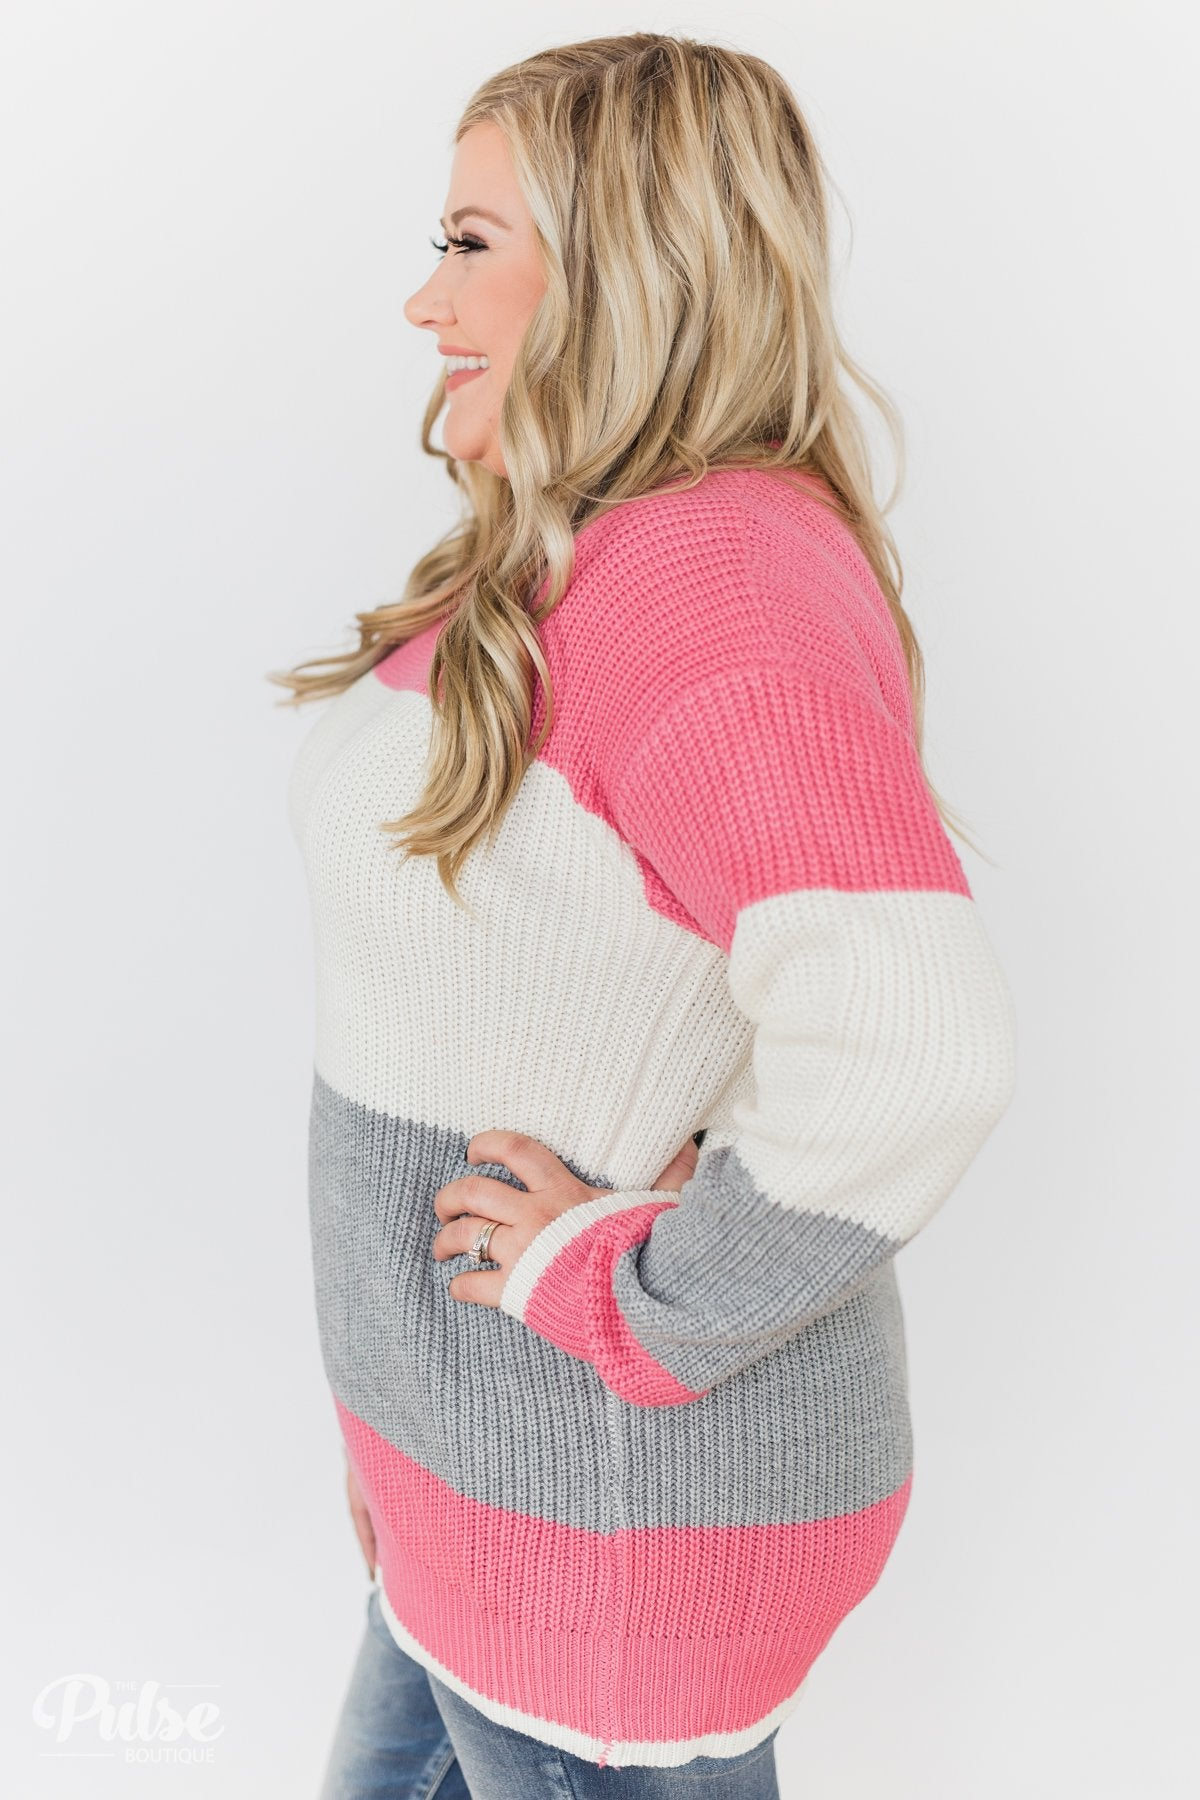 Up to You Knitted Color Block Sweater- Pink, Ivory, Grey